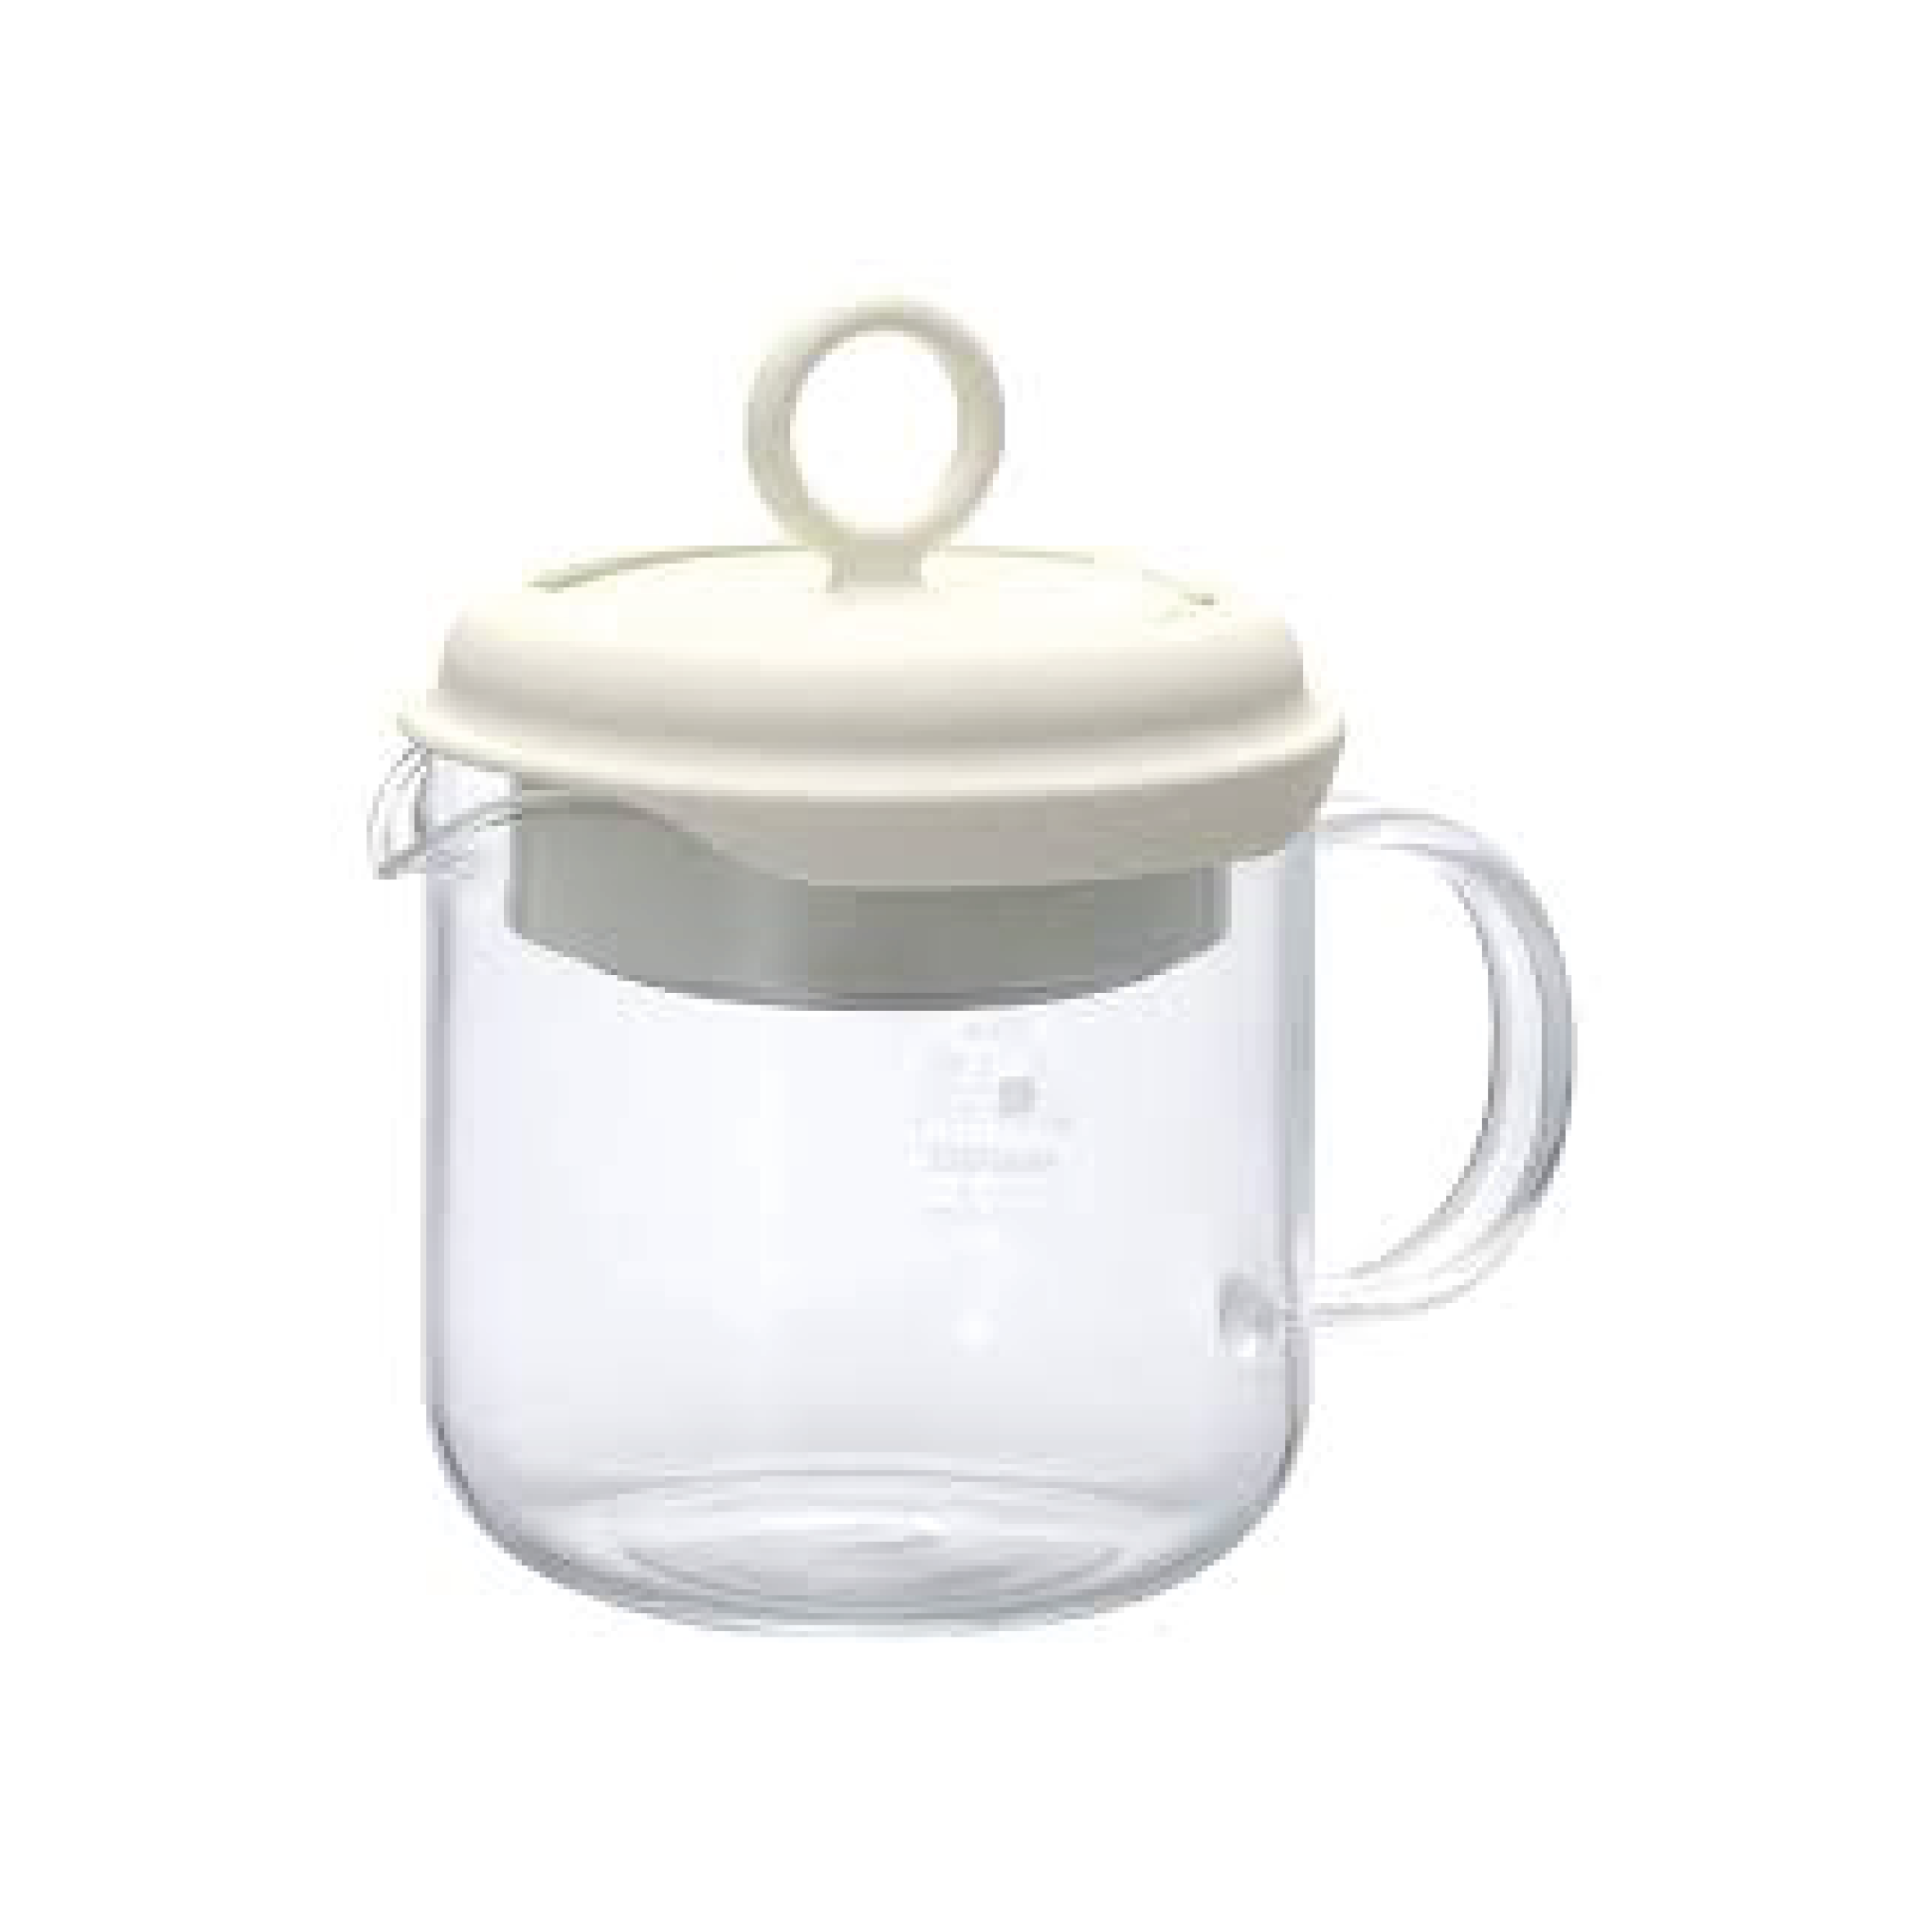 Hario Pull Up Tea Maker PTM-35-OW